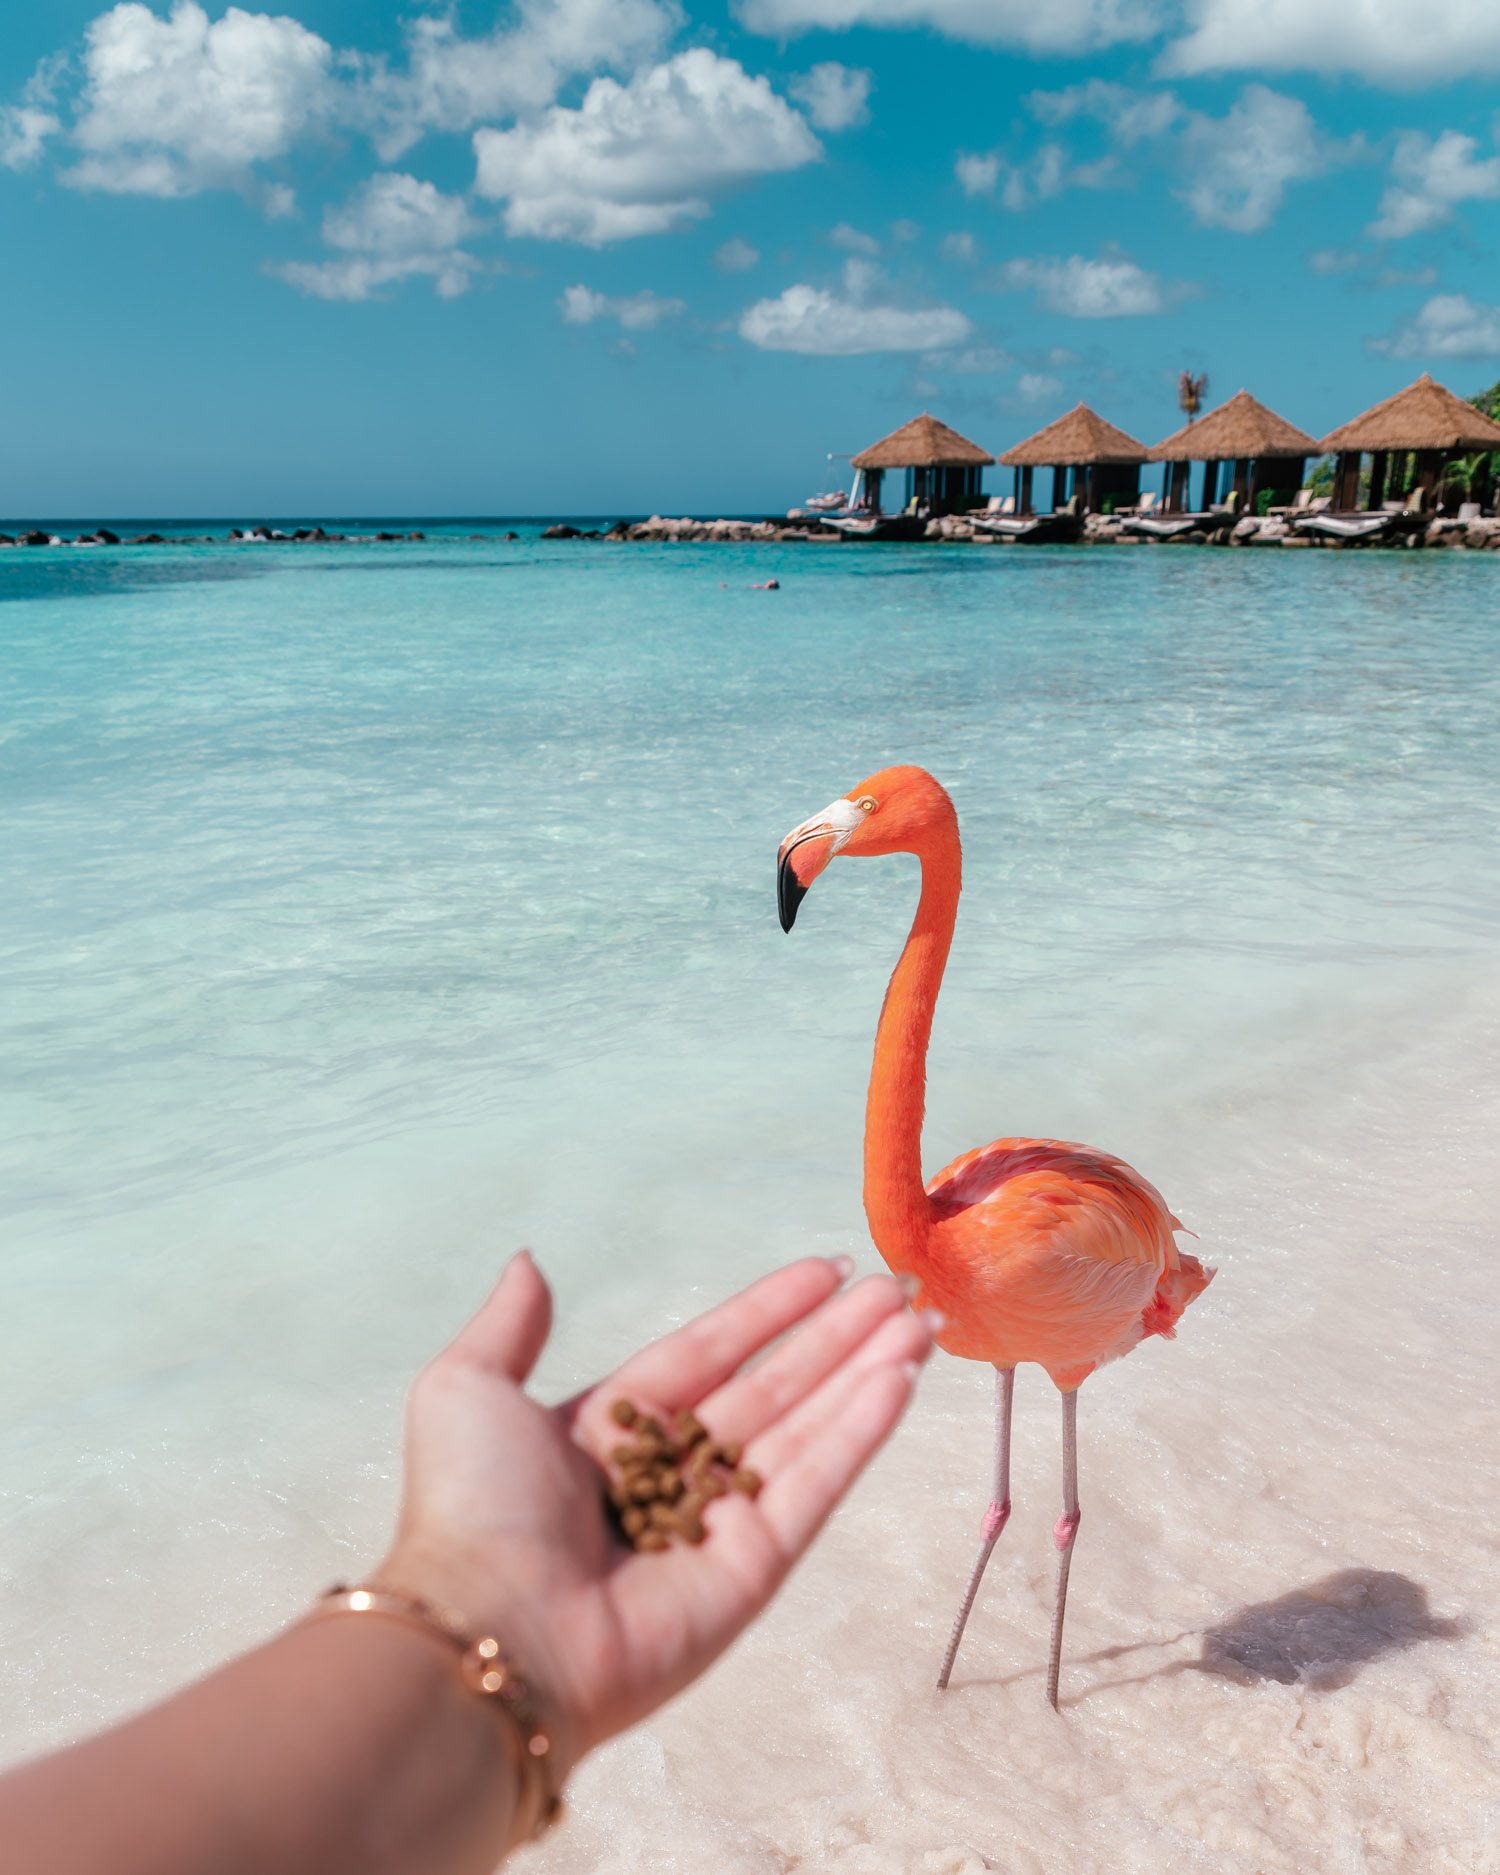 Feeding Flamingos, Renaissance Private Island | The Ultimate Aruba Travel Guide